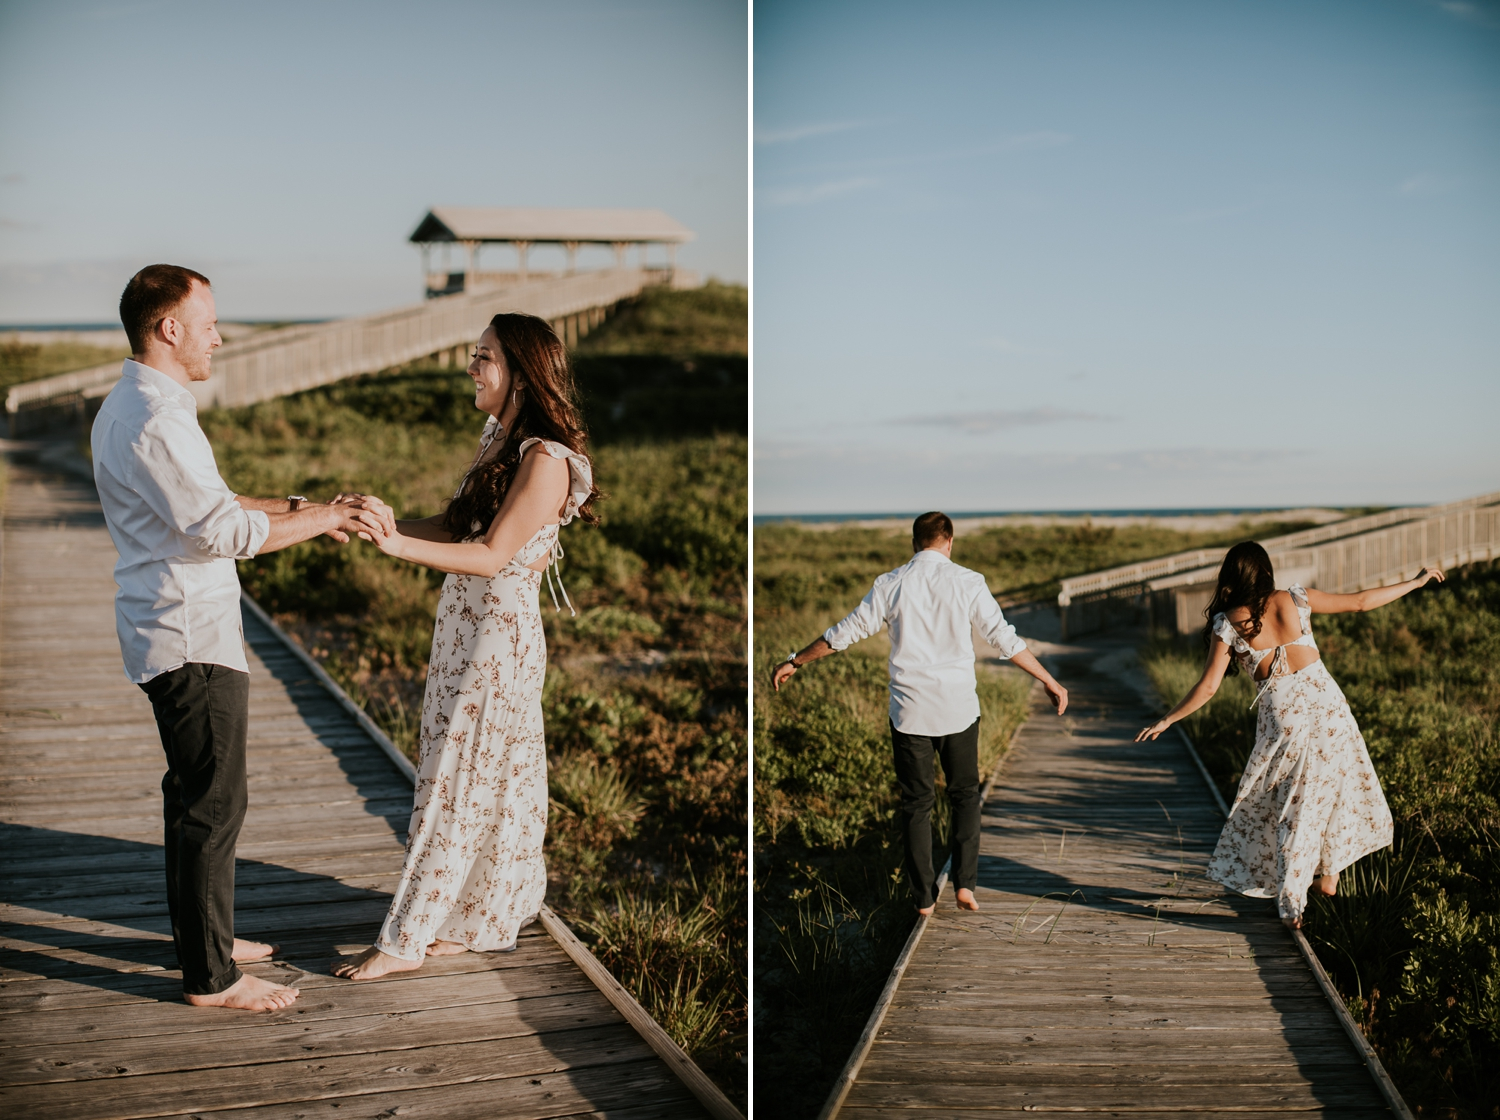 ho-hum-beach-boat-ride-engagement-photography-bellport-new-york 8.jpg